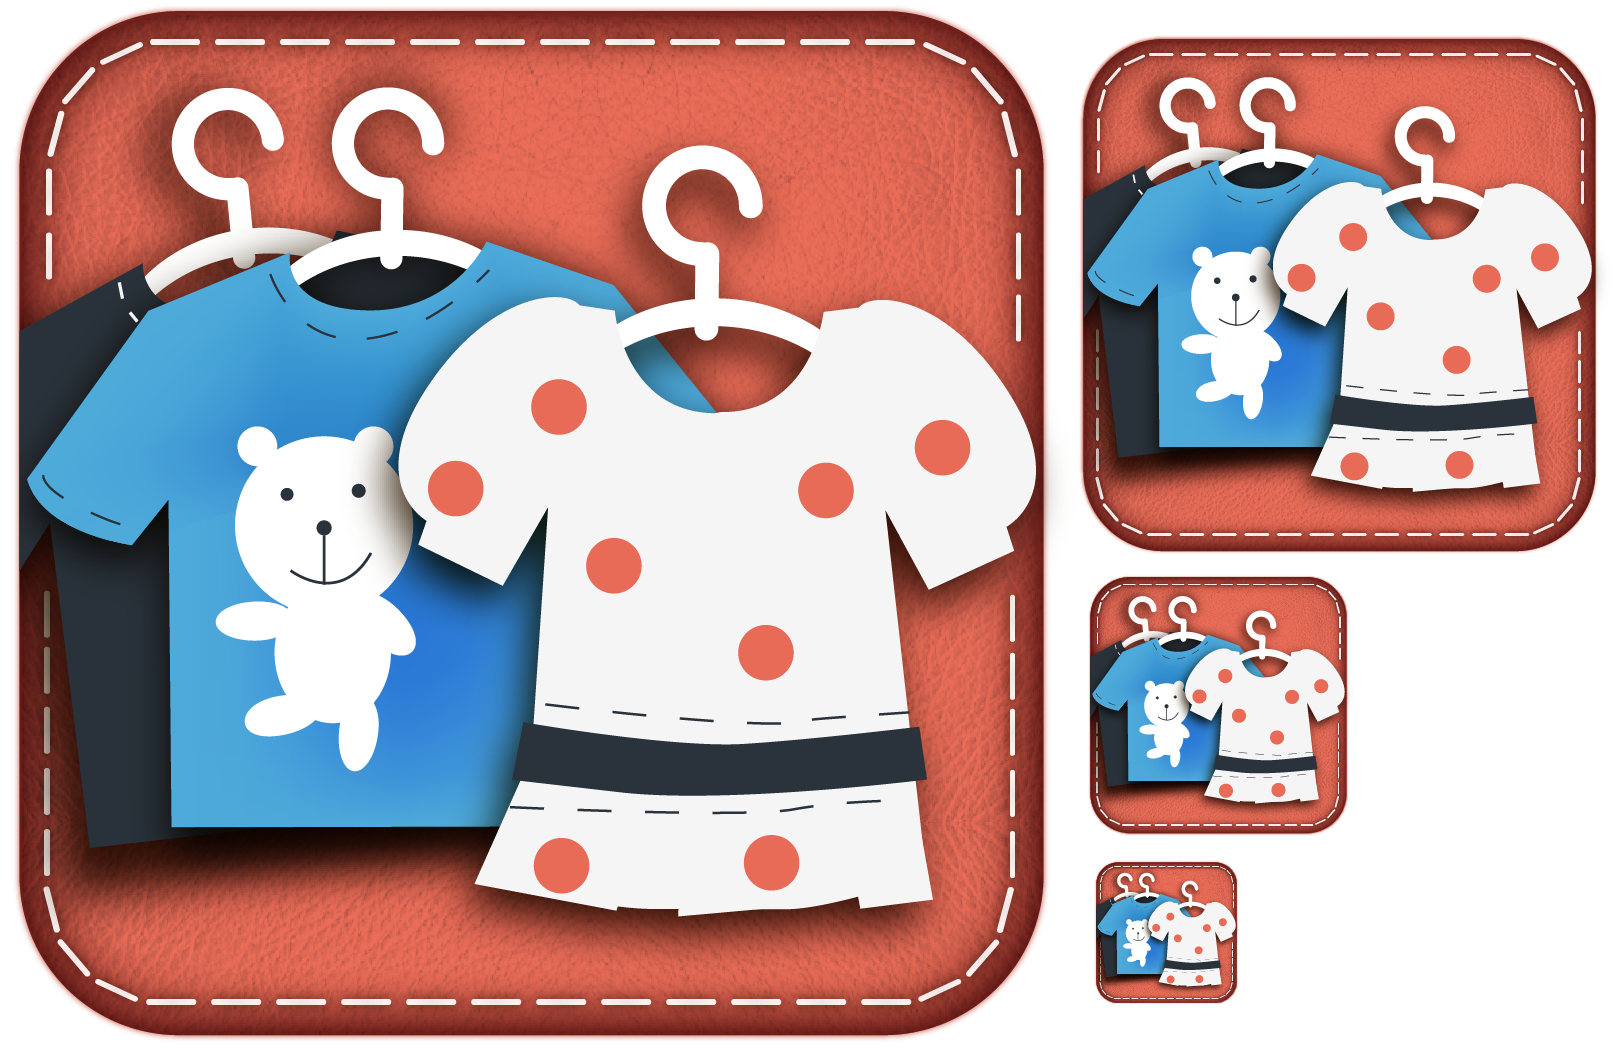 Cute iPad icons for Kids + Clothes + Shopping app